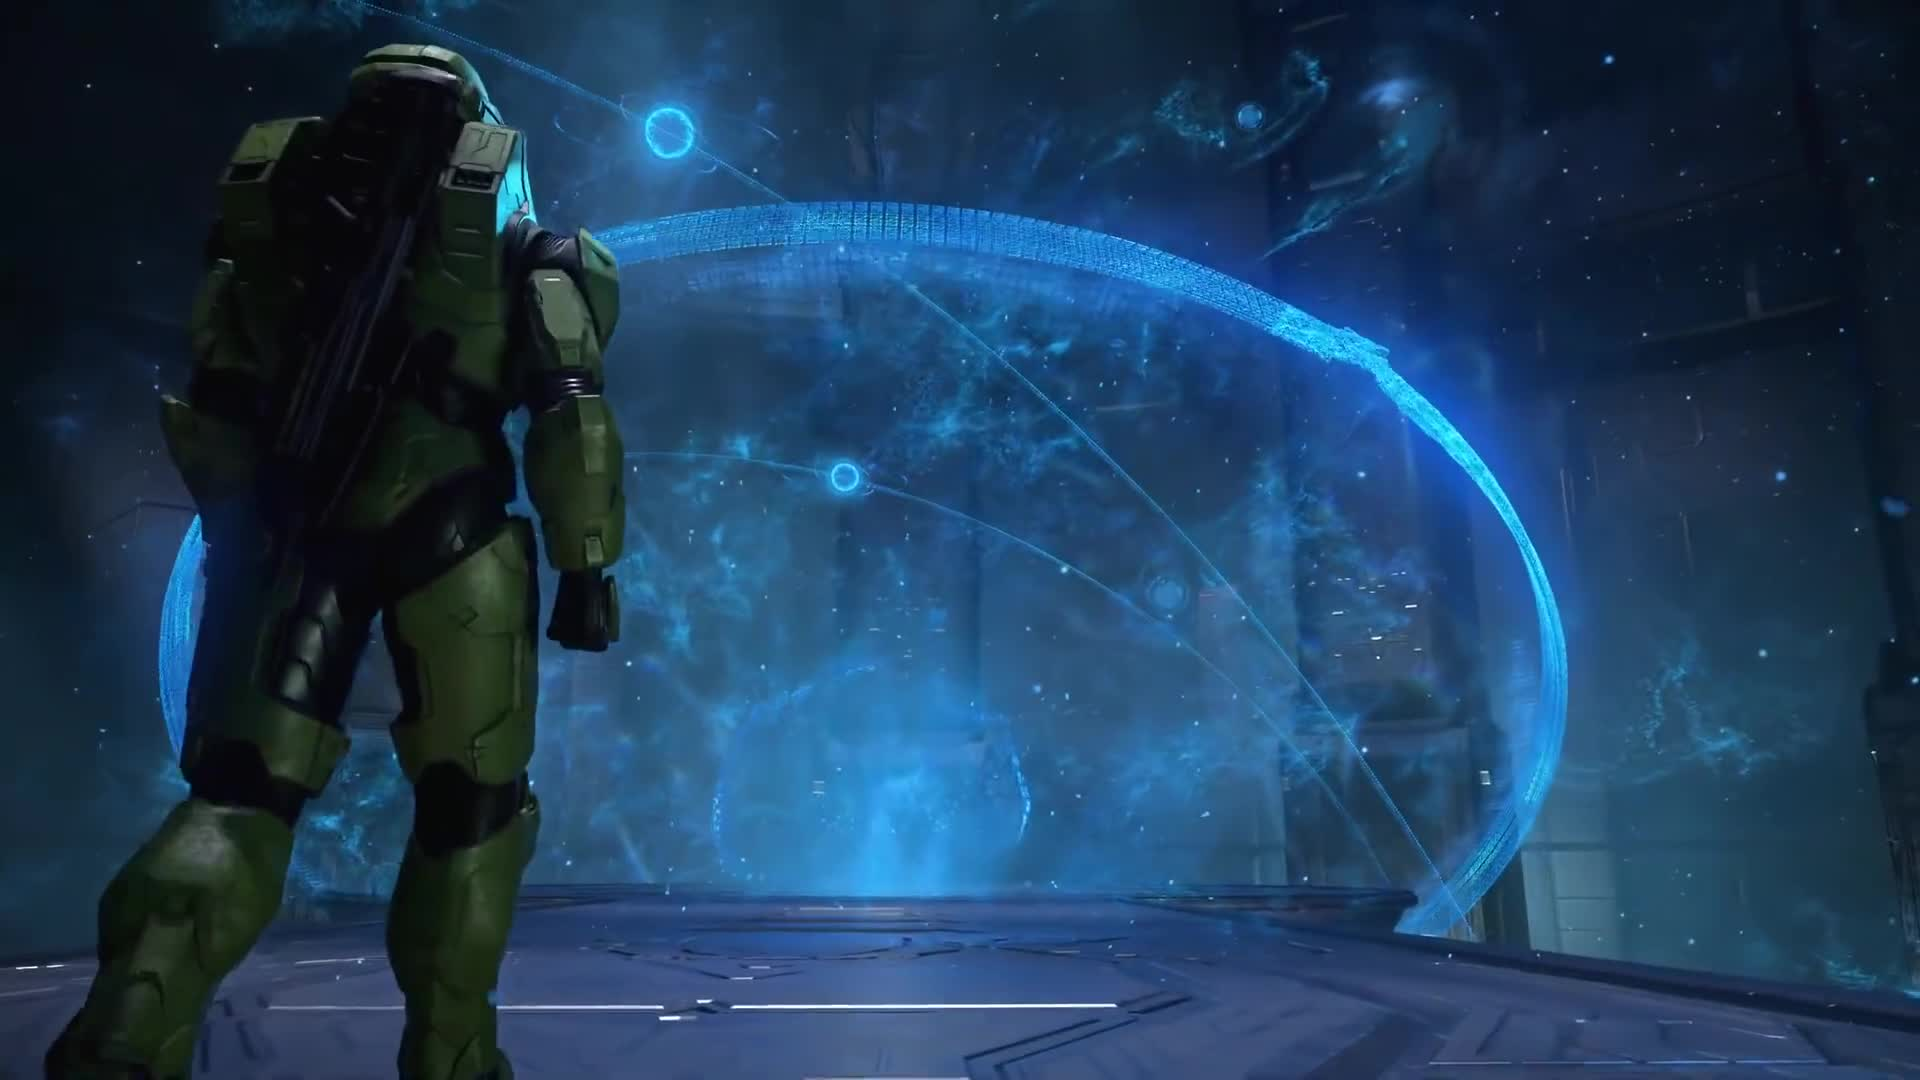 Halo Infinite Trailer Gifs Search | Search & Share on Homdor